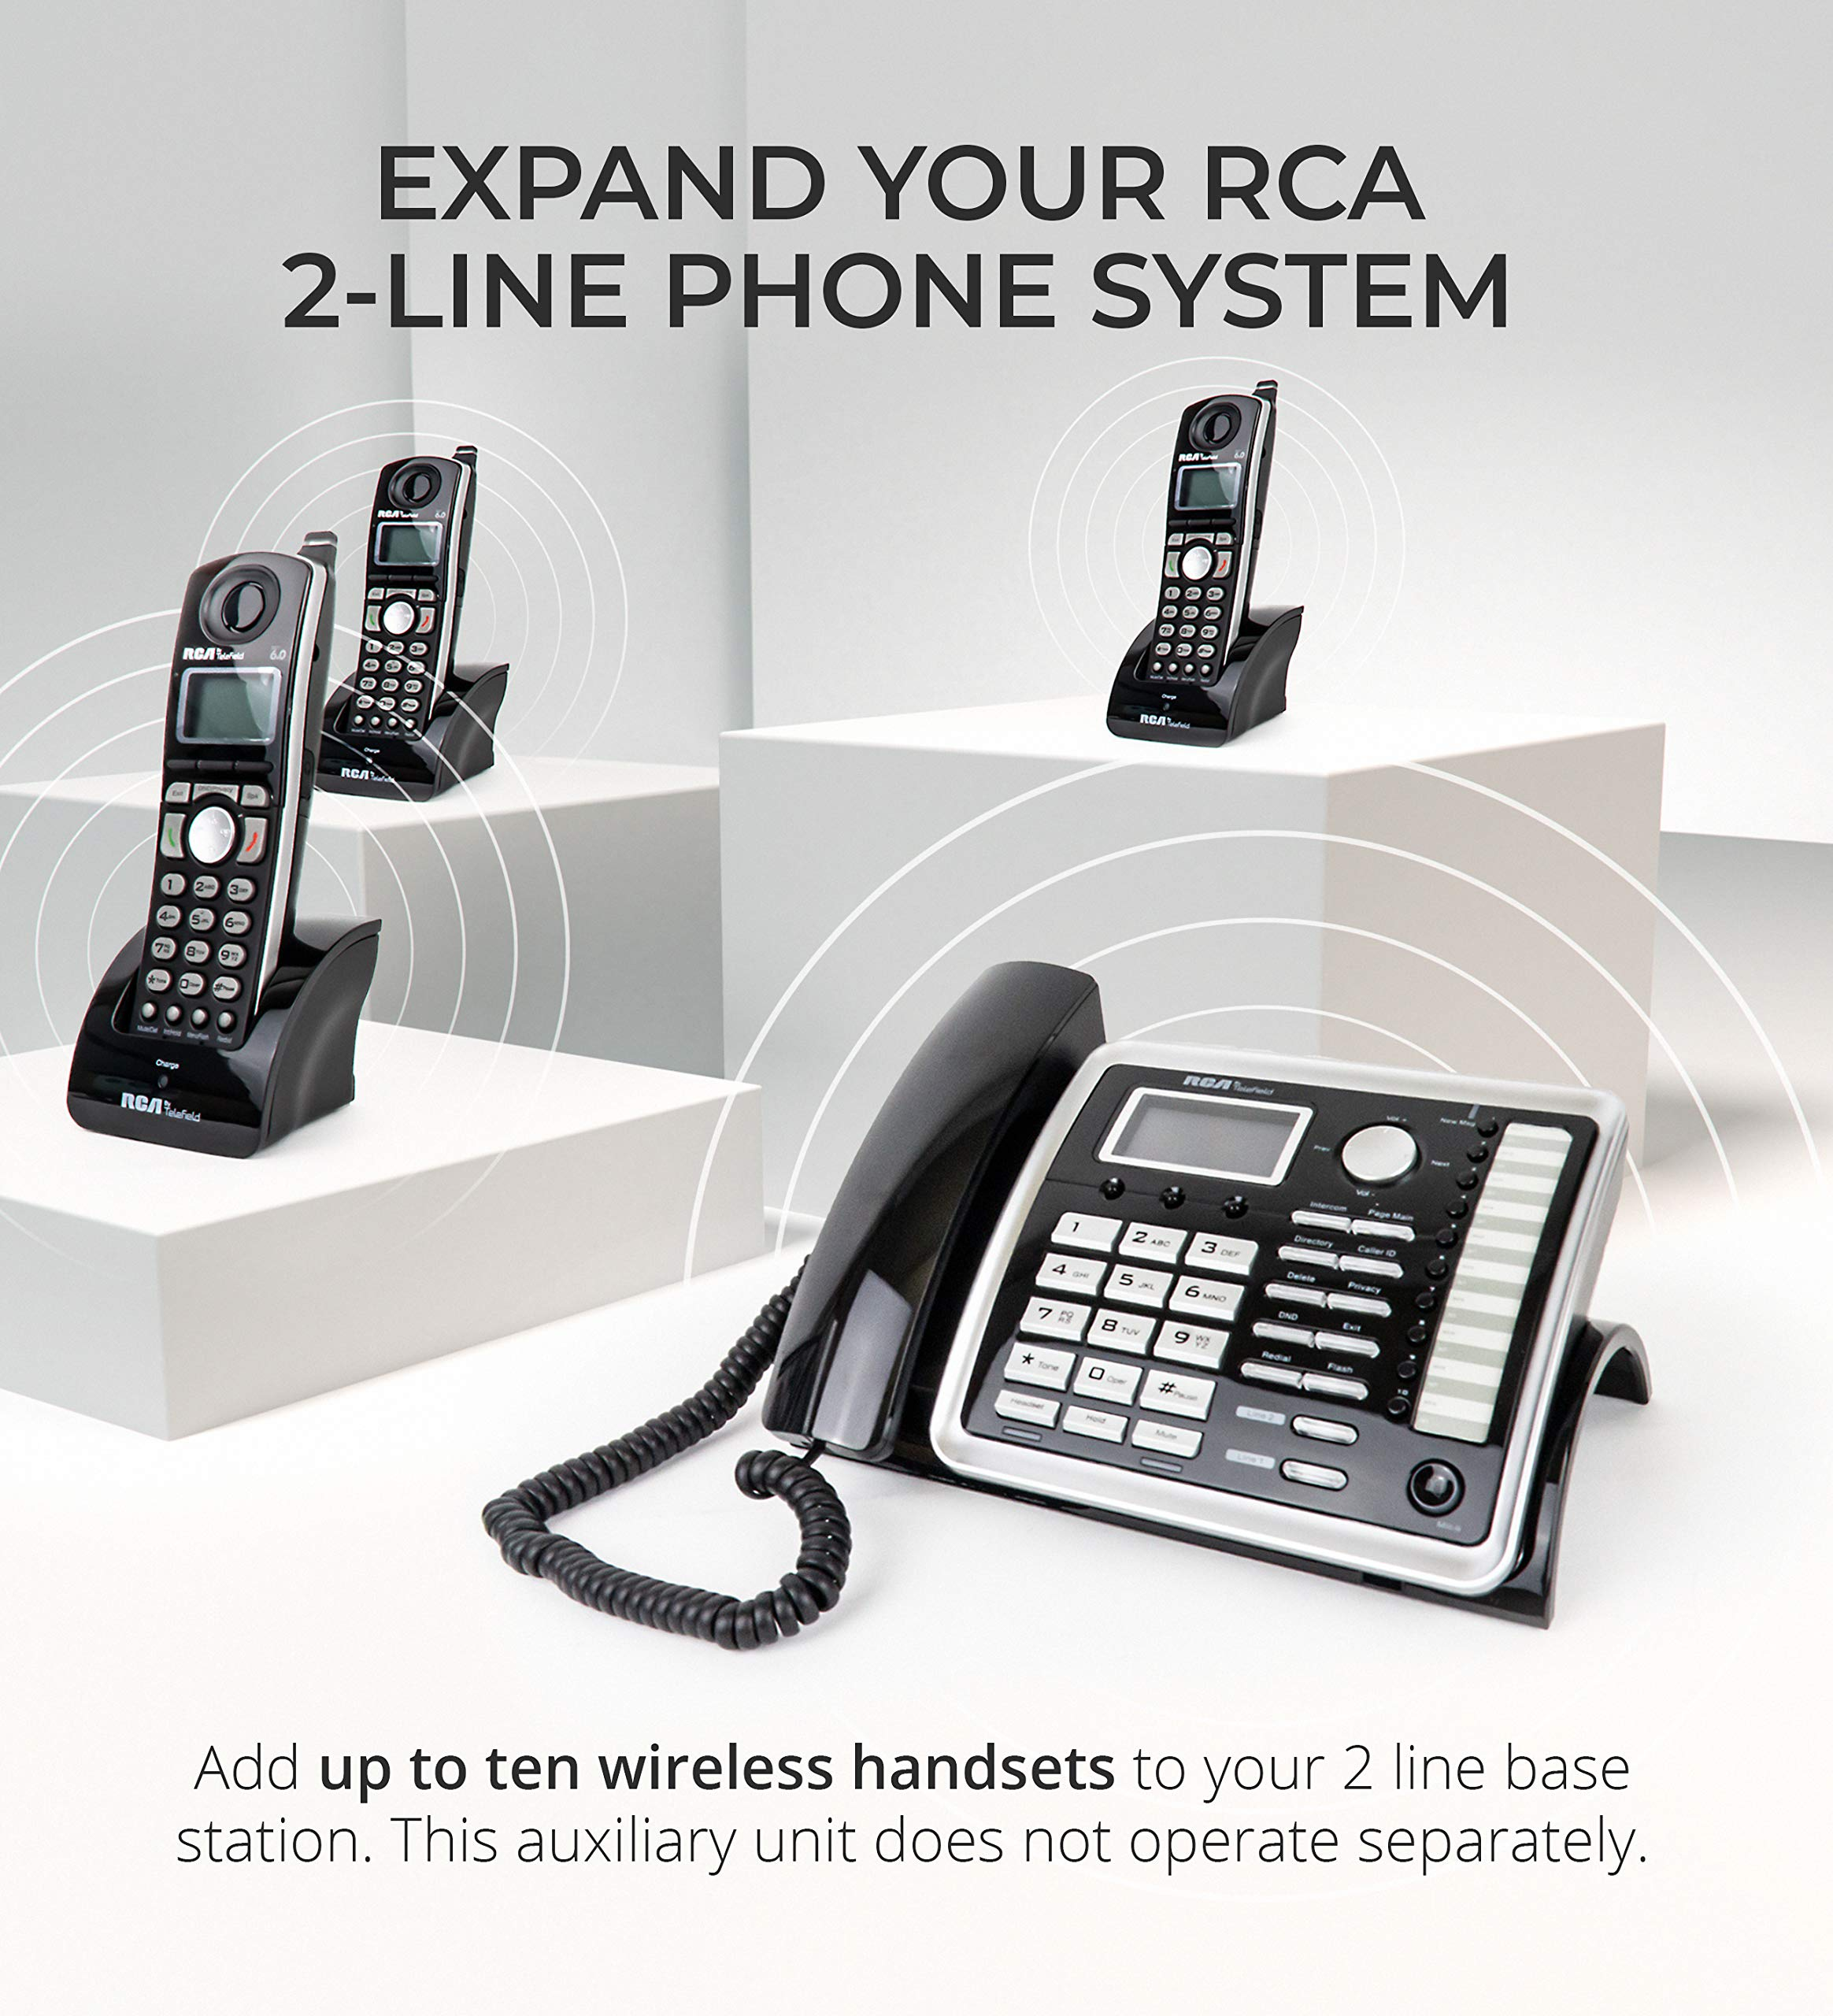 RCA 25260 2-Line Expandable Phone System - Full Duplex Telephone with Built-in Intercom Bundle with RCA 25055RE1 DECT 6.0 Cordless Accessory Handsets (3-Pack) and 6 Blucoil AA Batteries by blucoil (Image #2)